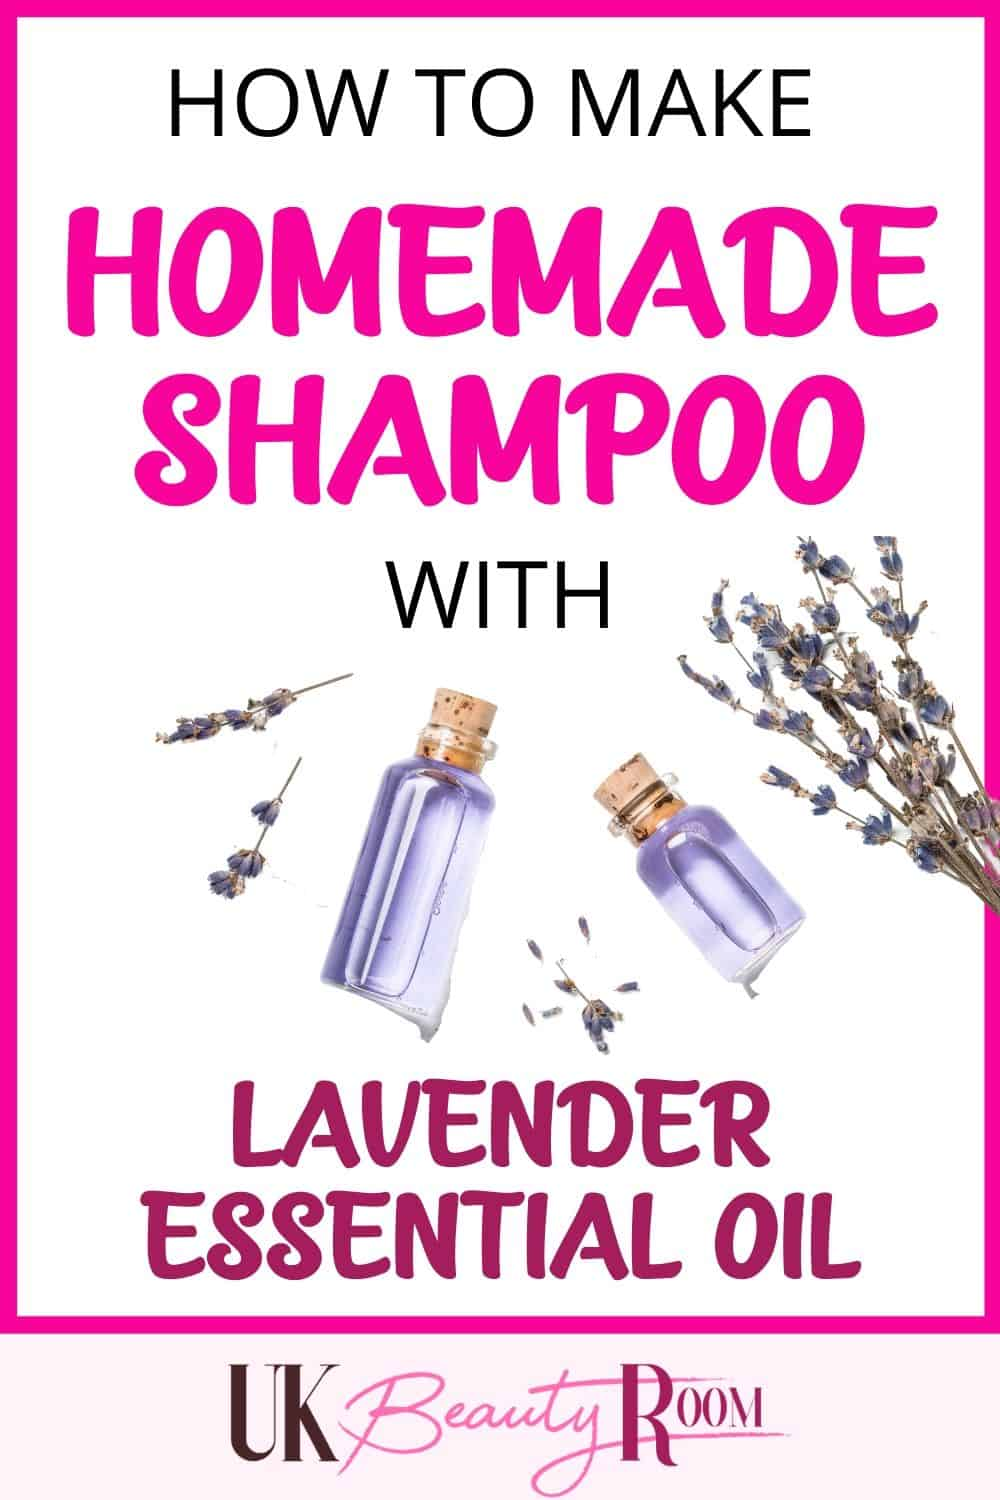 How to make homemade shampoo with lavender essential oil for hair